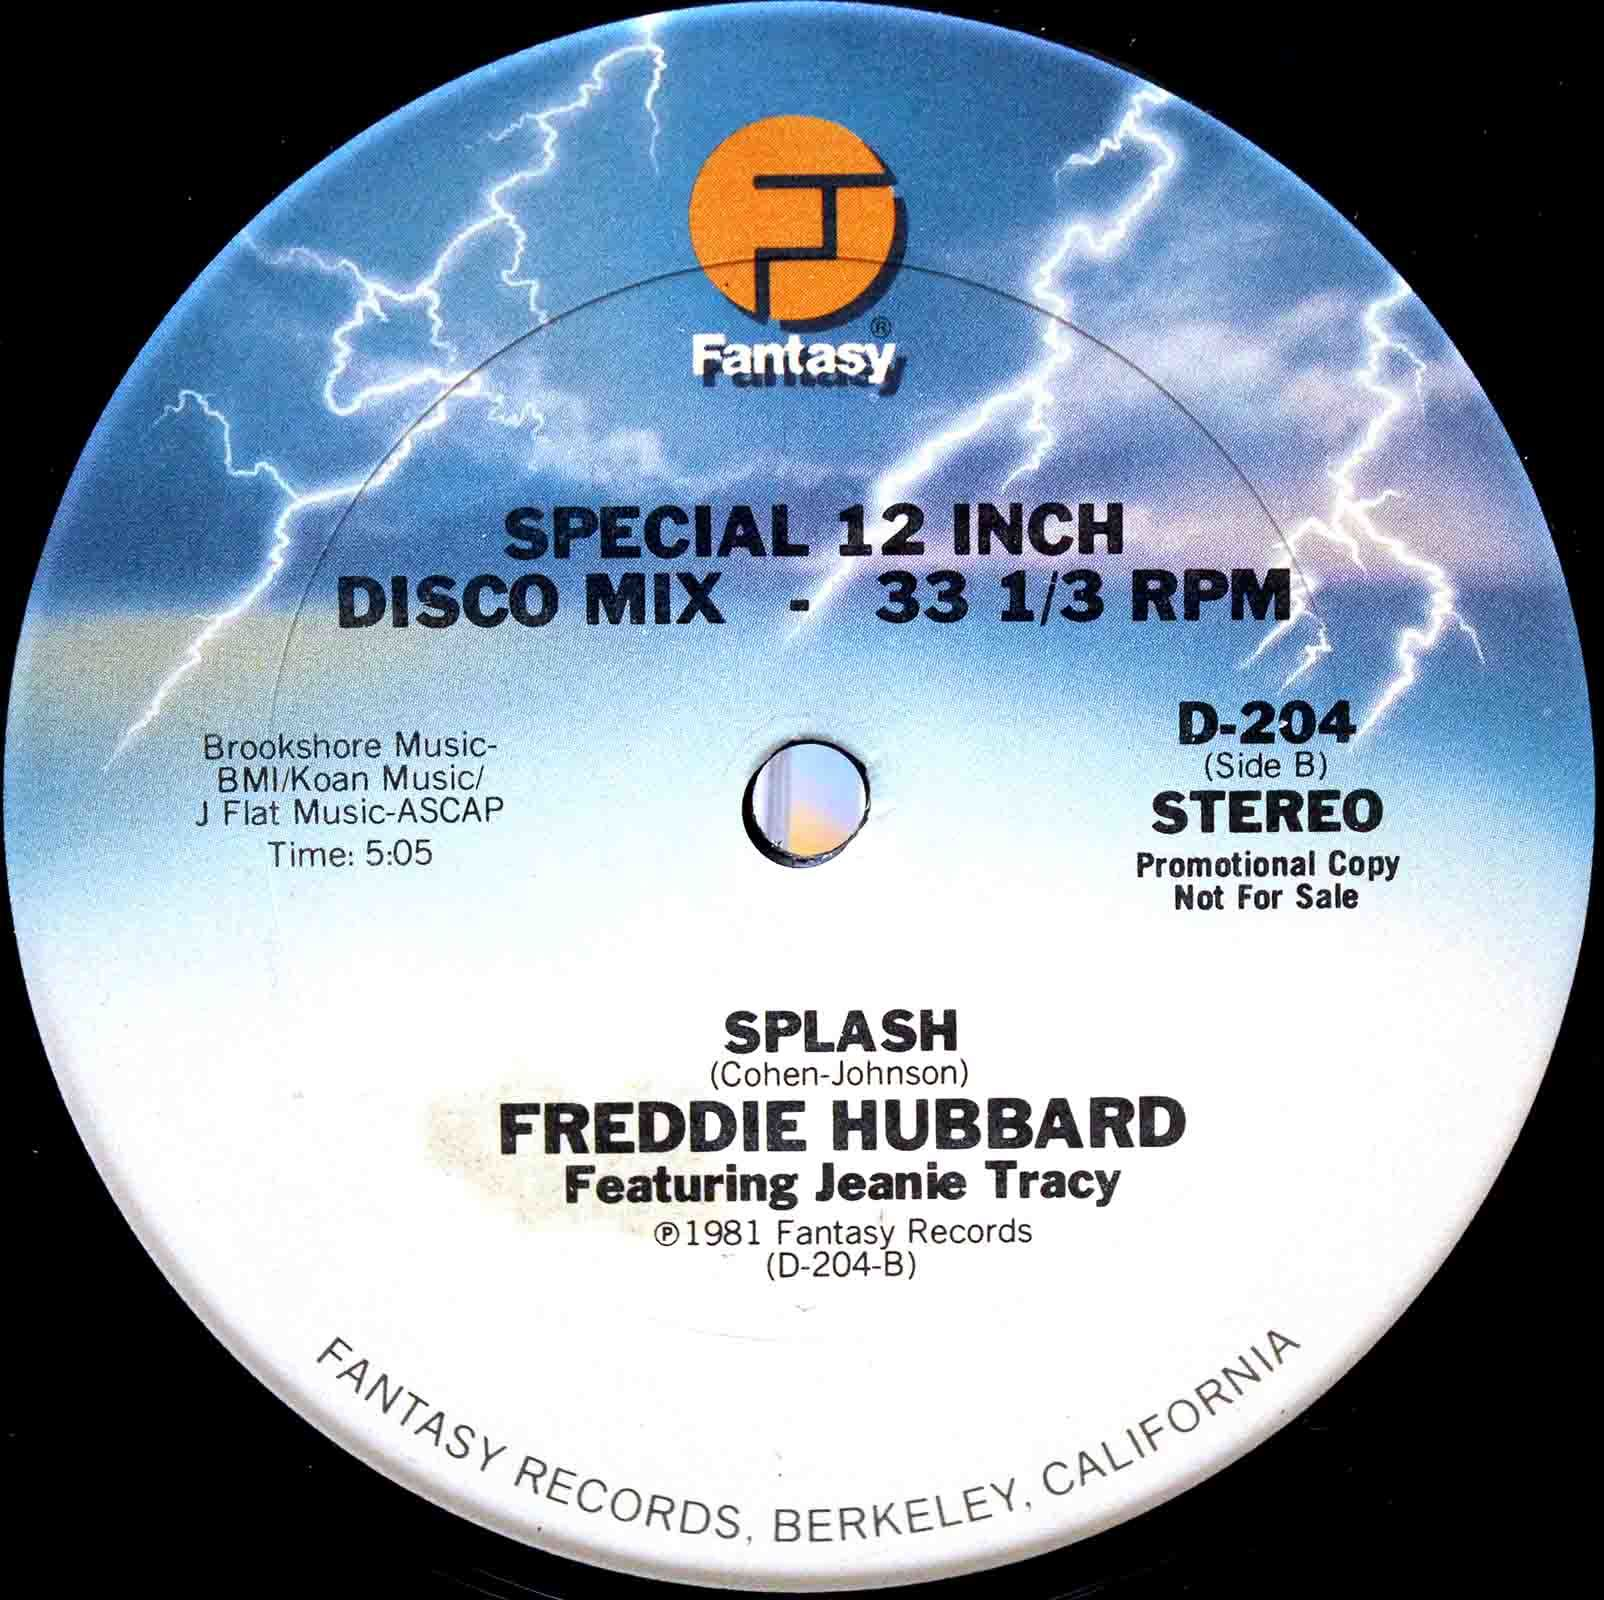 Freddie Hubbard Featuring Jeanie Tracy - Splash 03